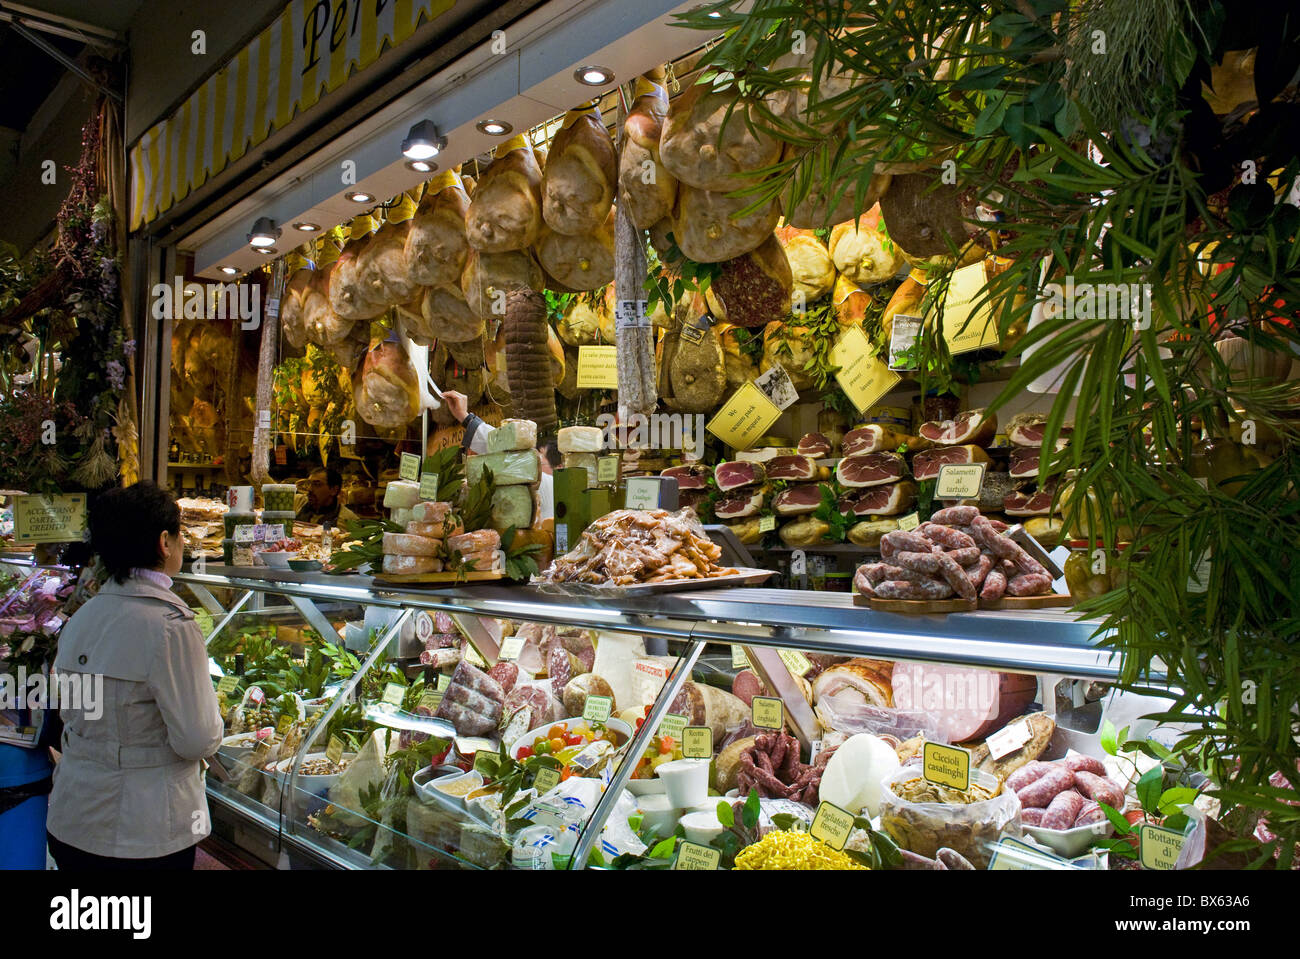 Mercato Centrale (Central Market), Florence (Firenze), Tuscany, Italy, Europe - Stock Image